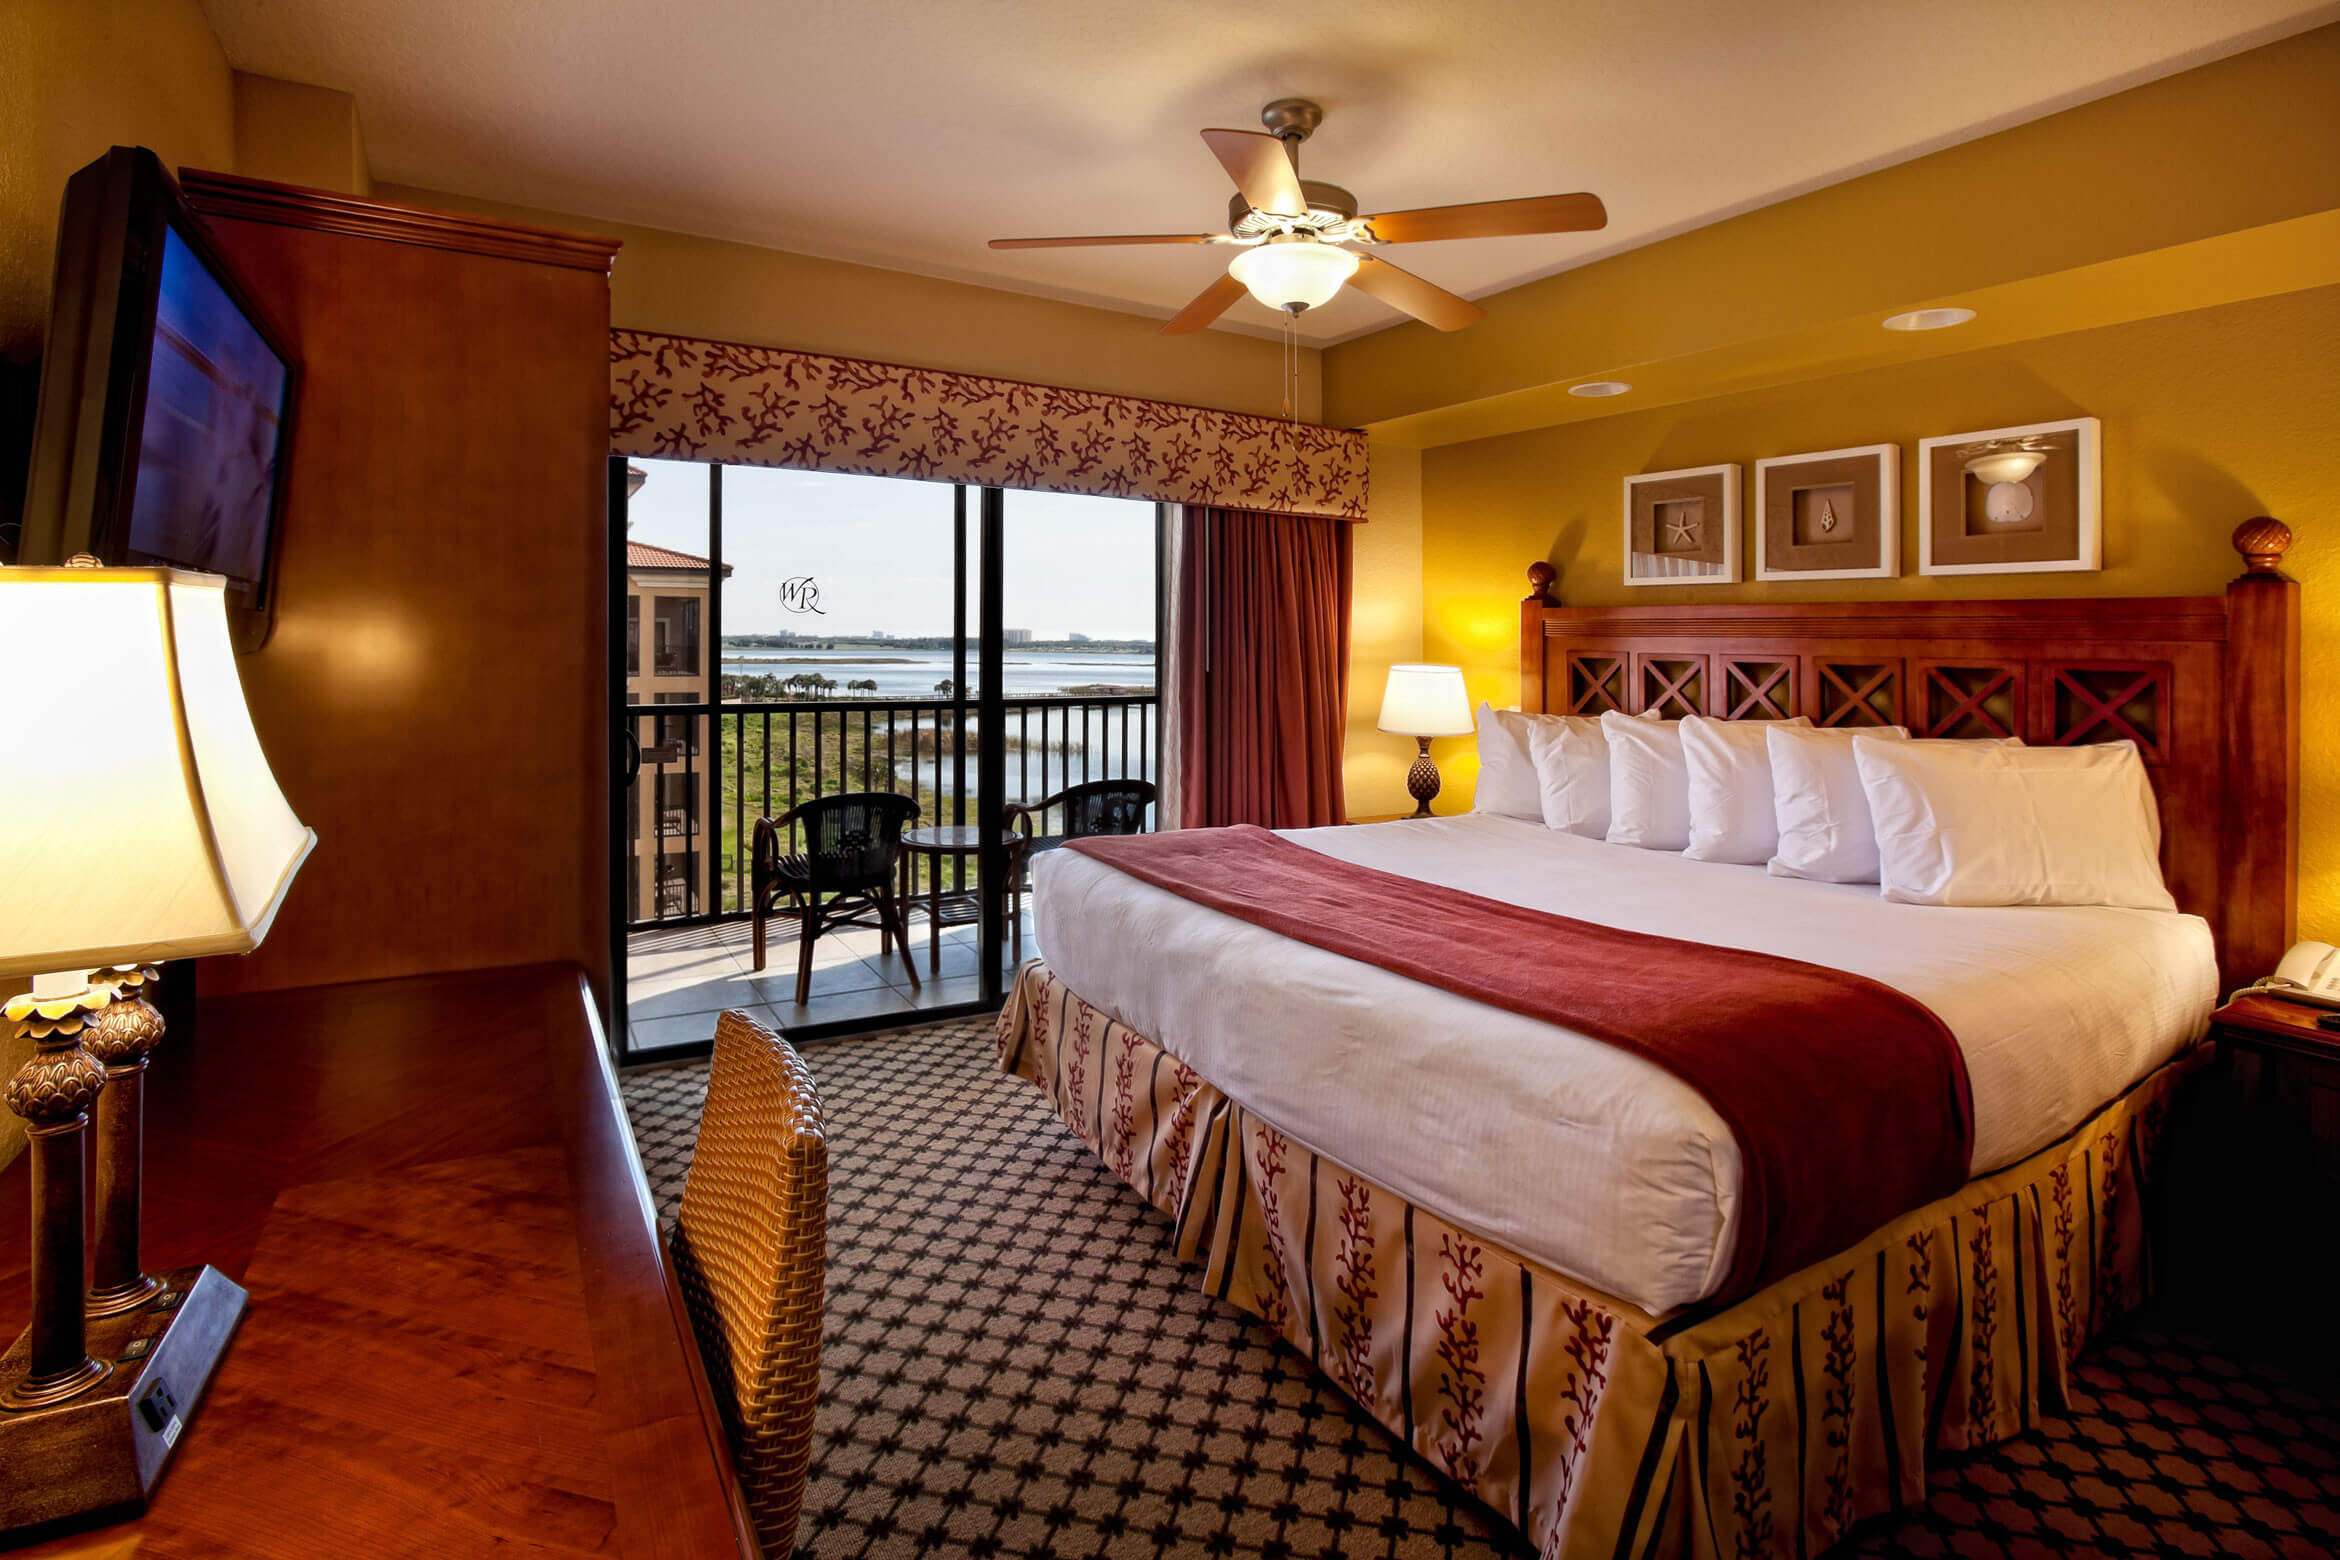 Wedding Accommodations In Orlando - Westgate Lakes Resort & Spa